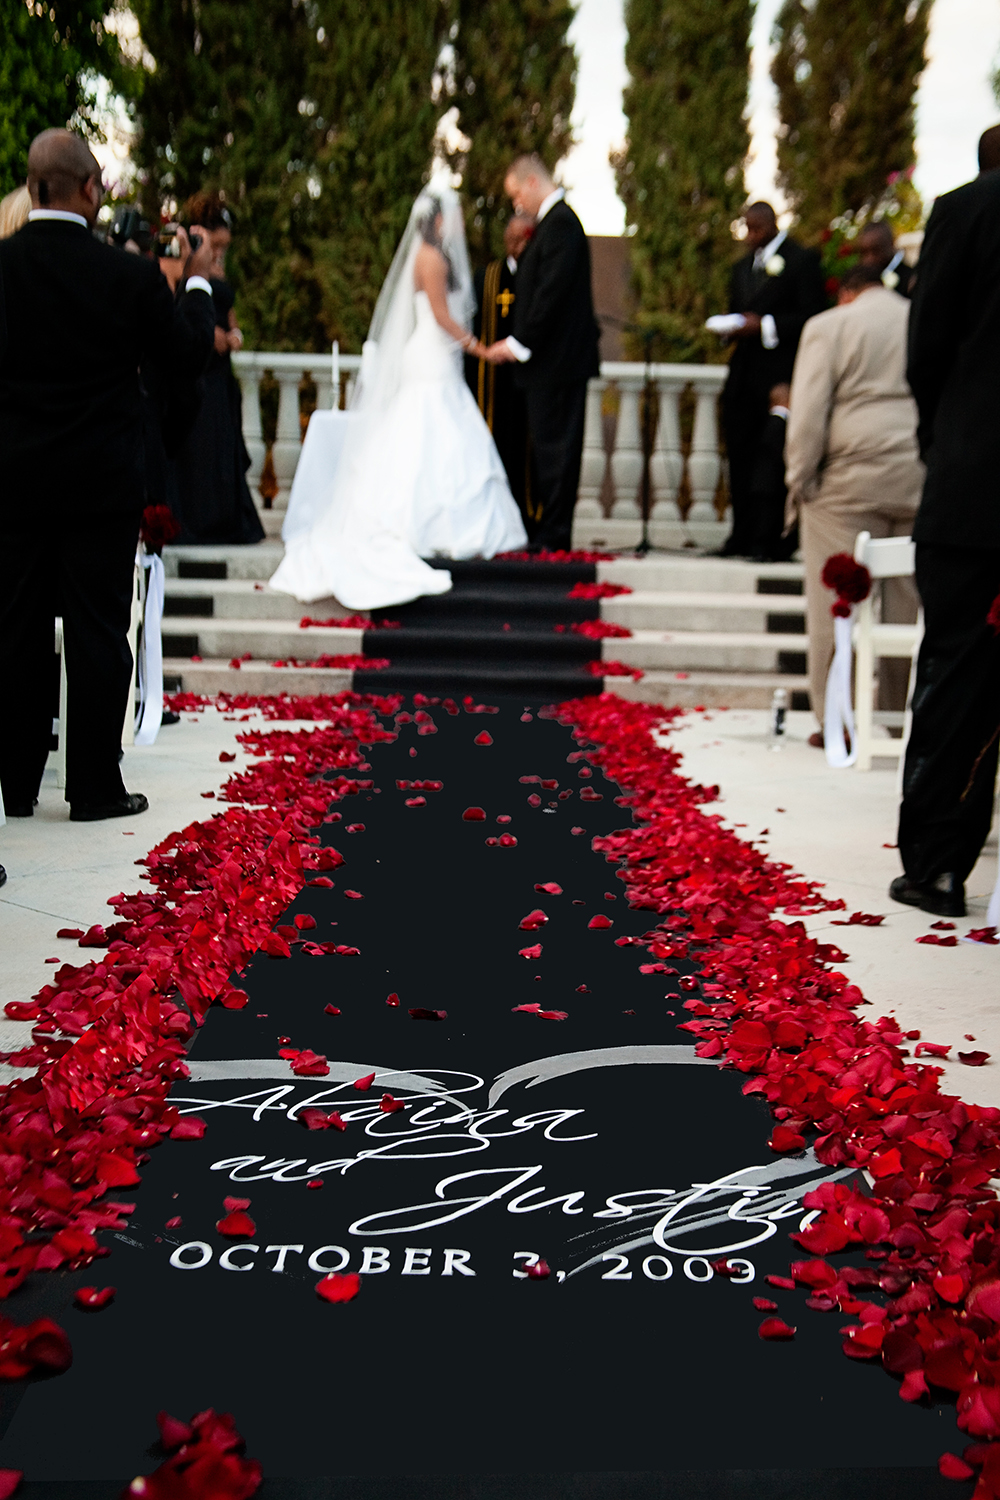 Black-and-Red-wedding-ideas-wallpaper-wpc5802858